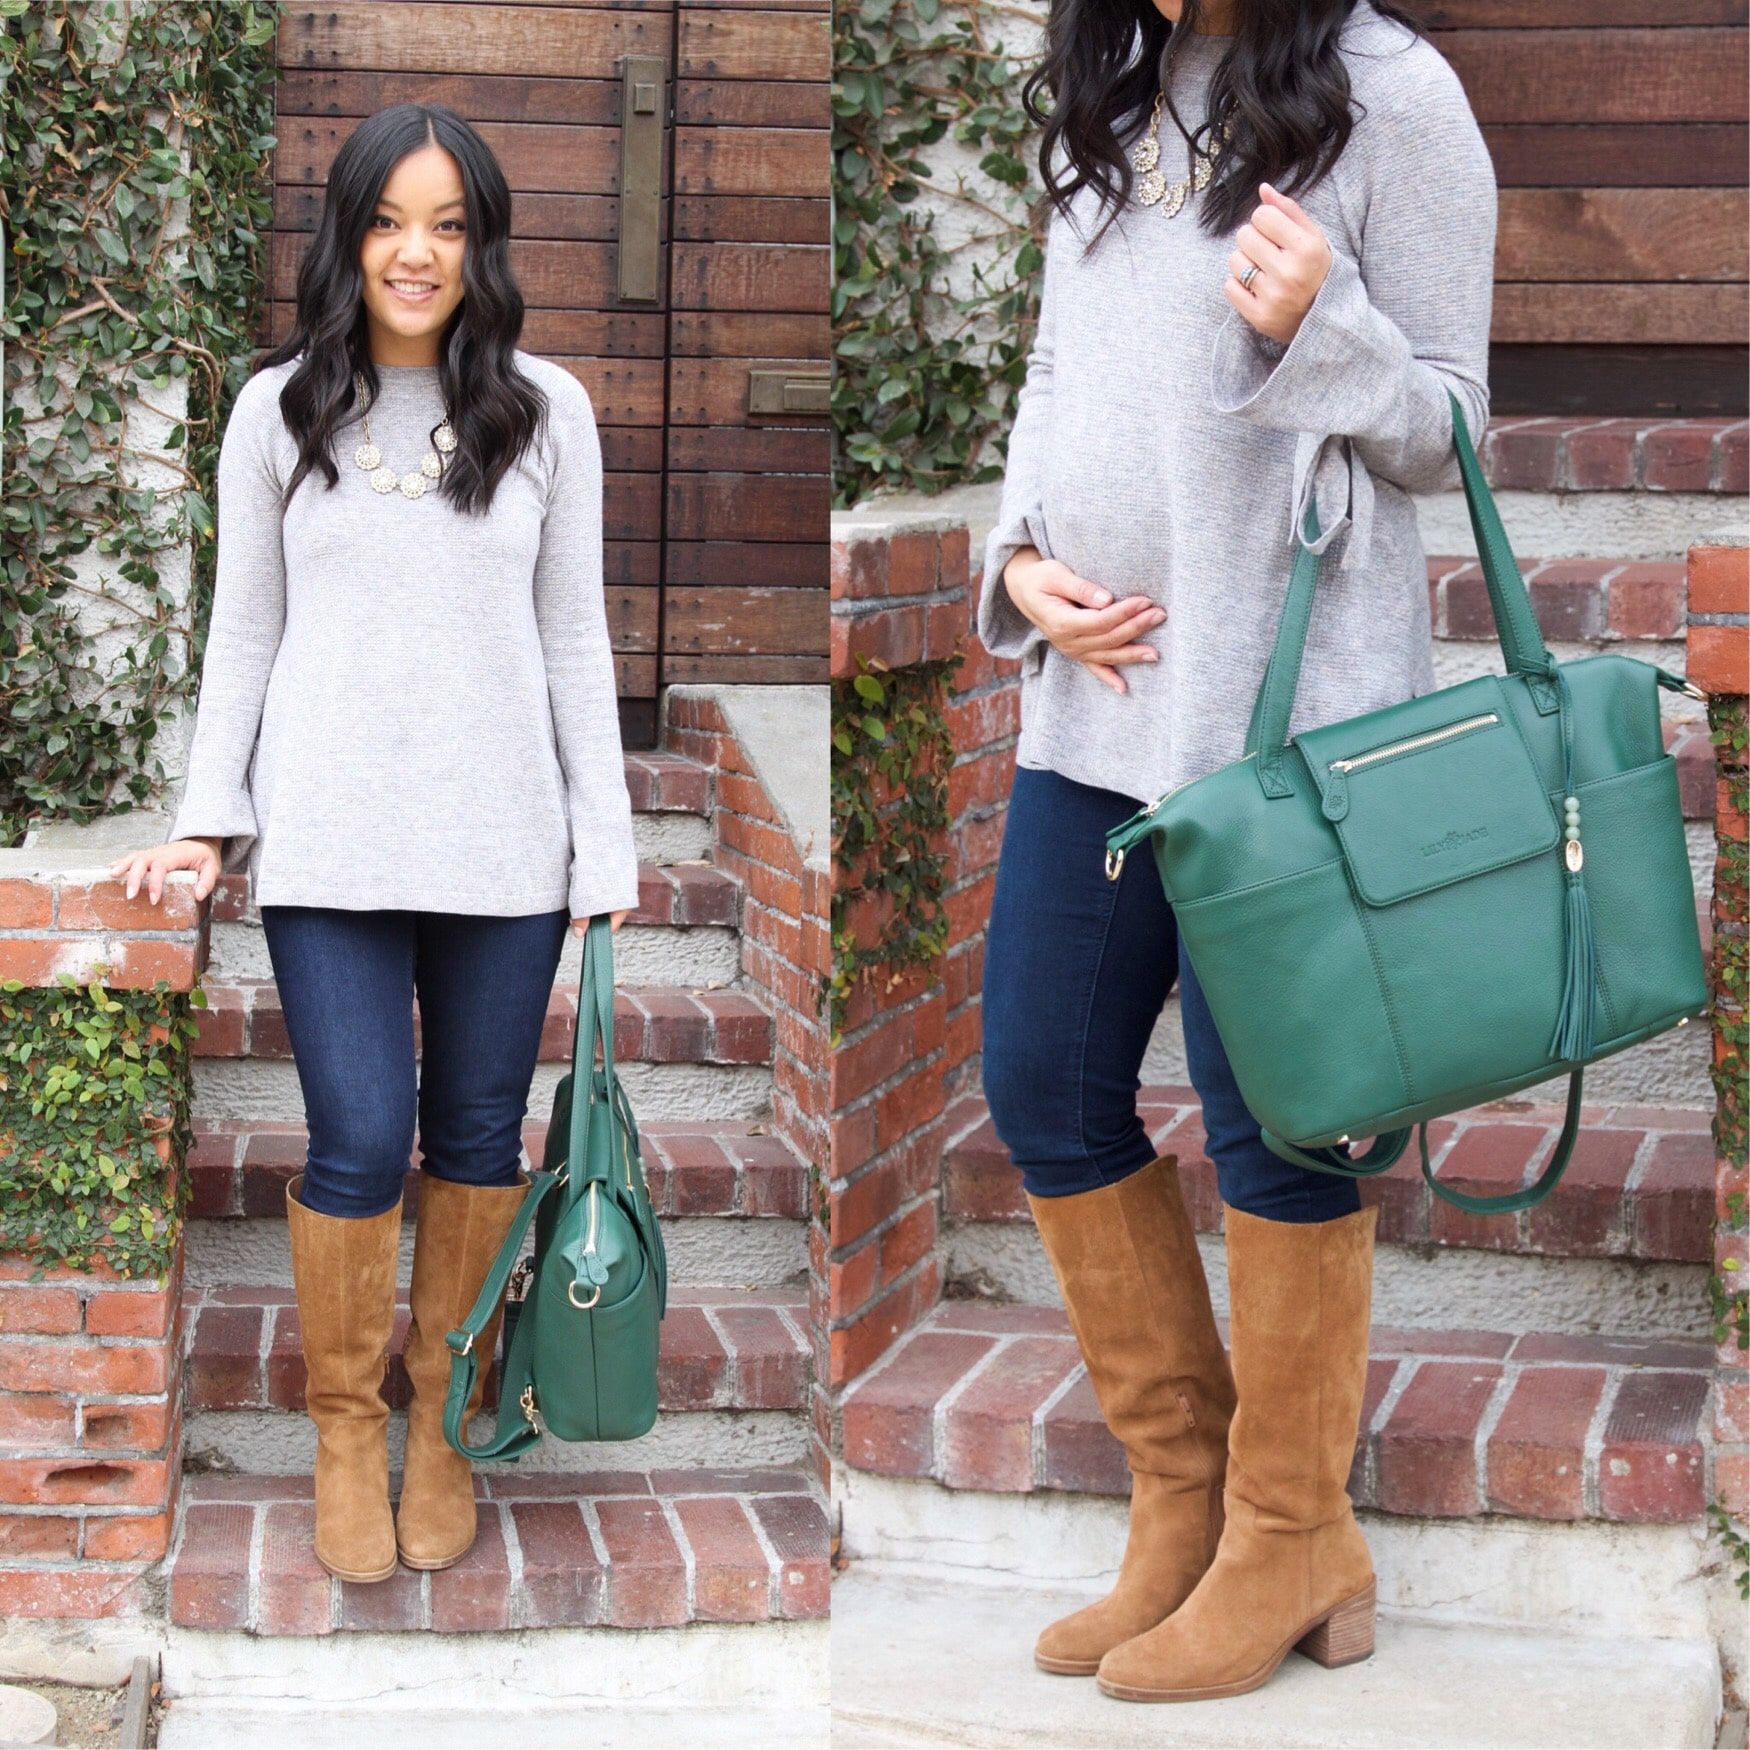 Grey Bell Sleeved Shirt + Boots + Lily Jade Bag + Skinny jeans